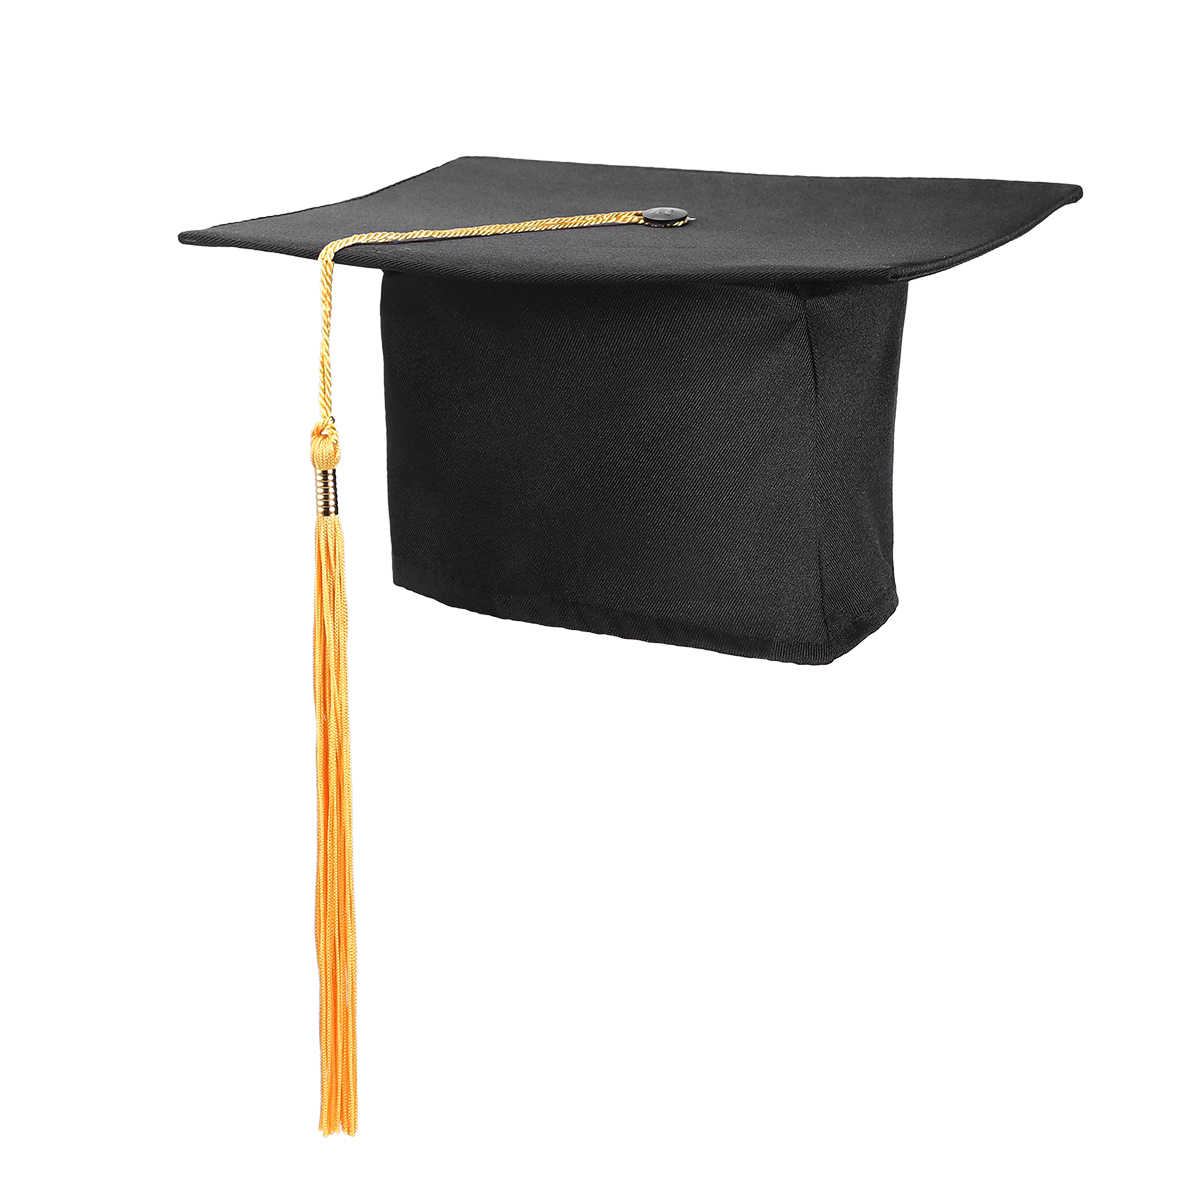 1PC Graduation Party Tassels หมวก Mortarboard University มี Master Doctor Academic หมวก